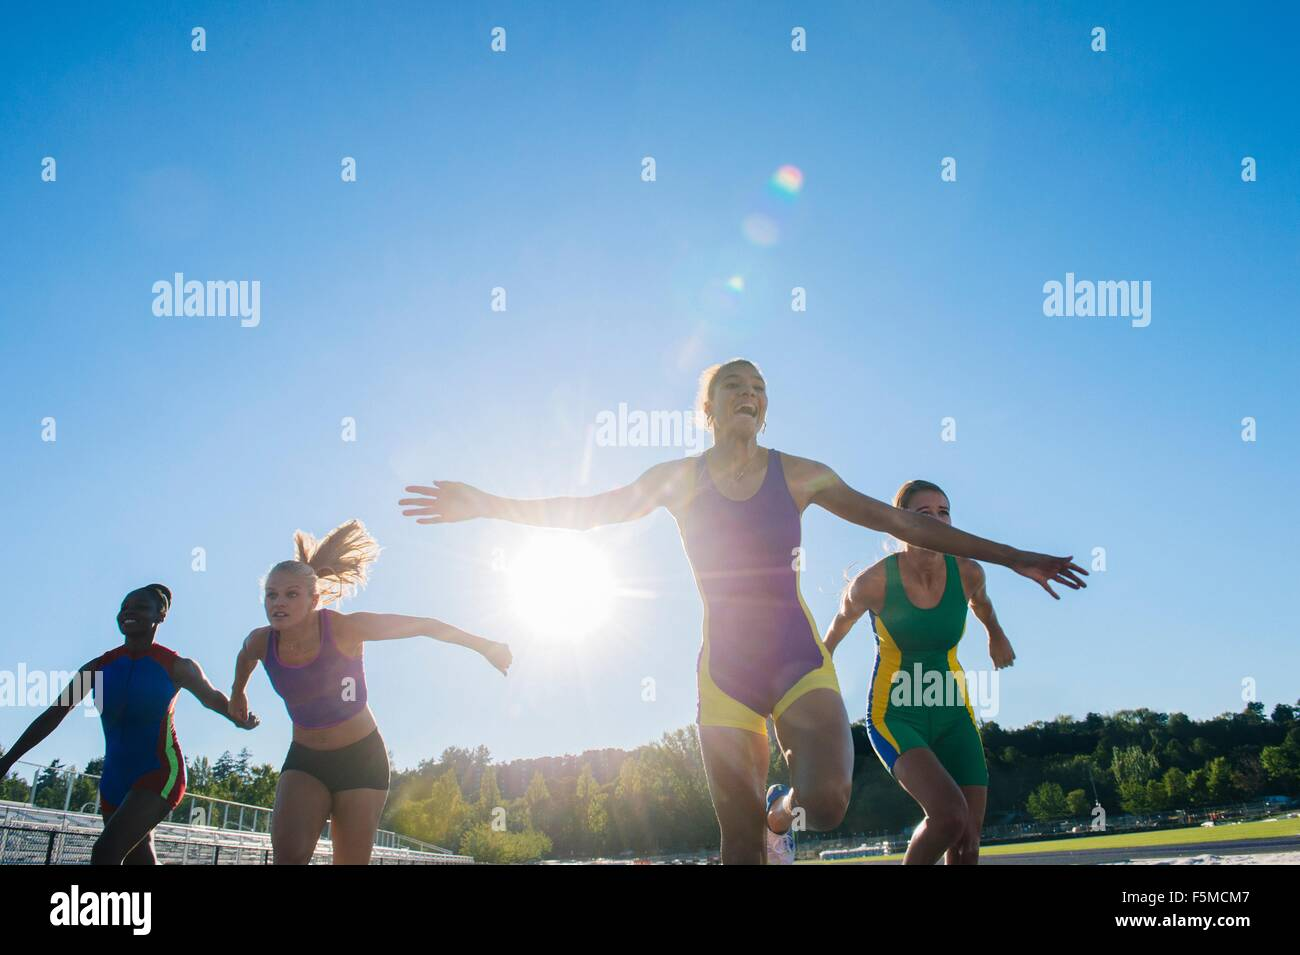 Four female athletes on athletics track, coming to end of race - Stock Image